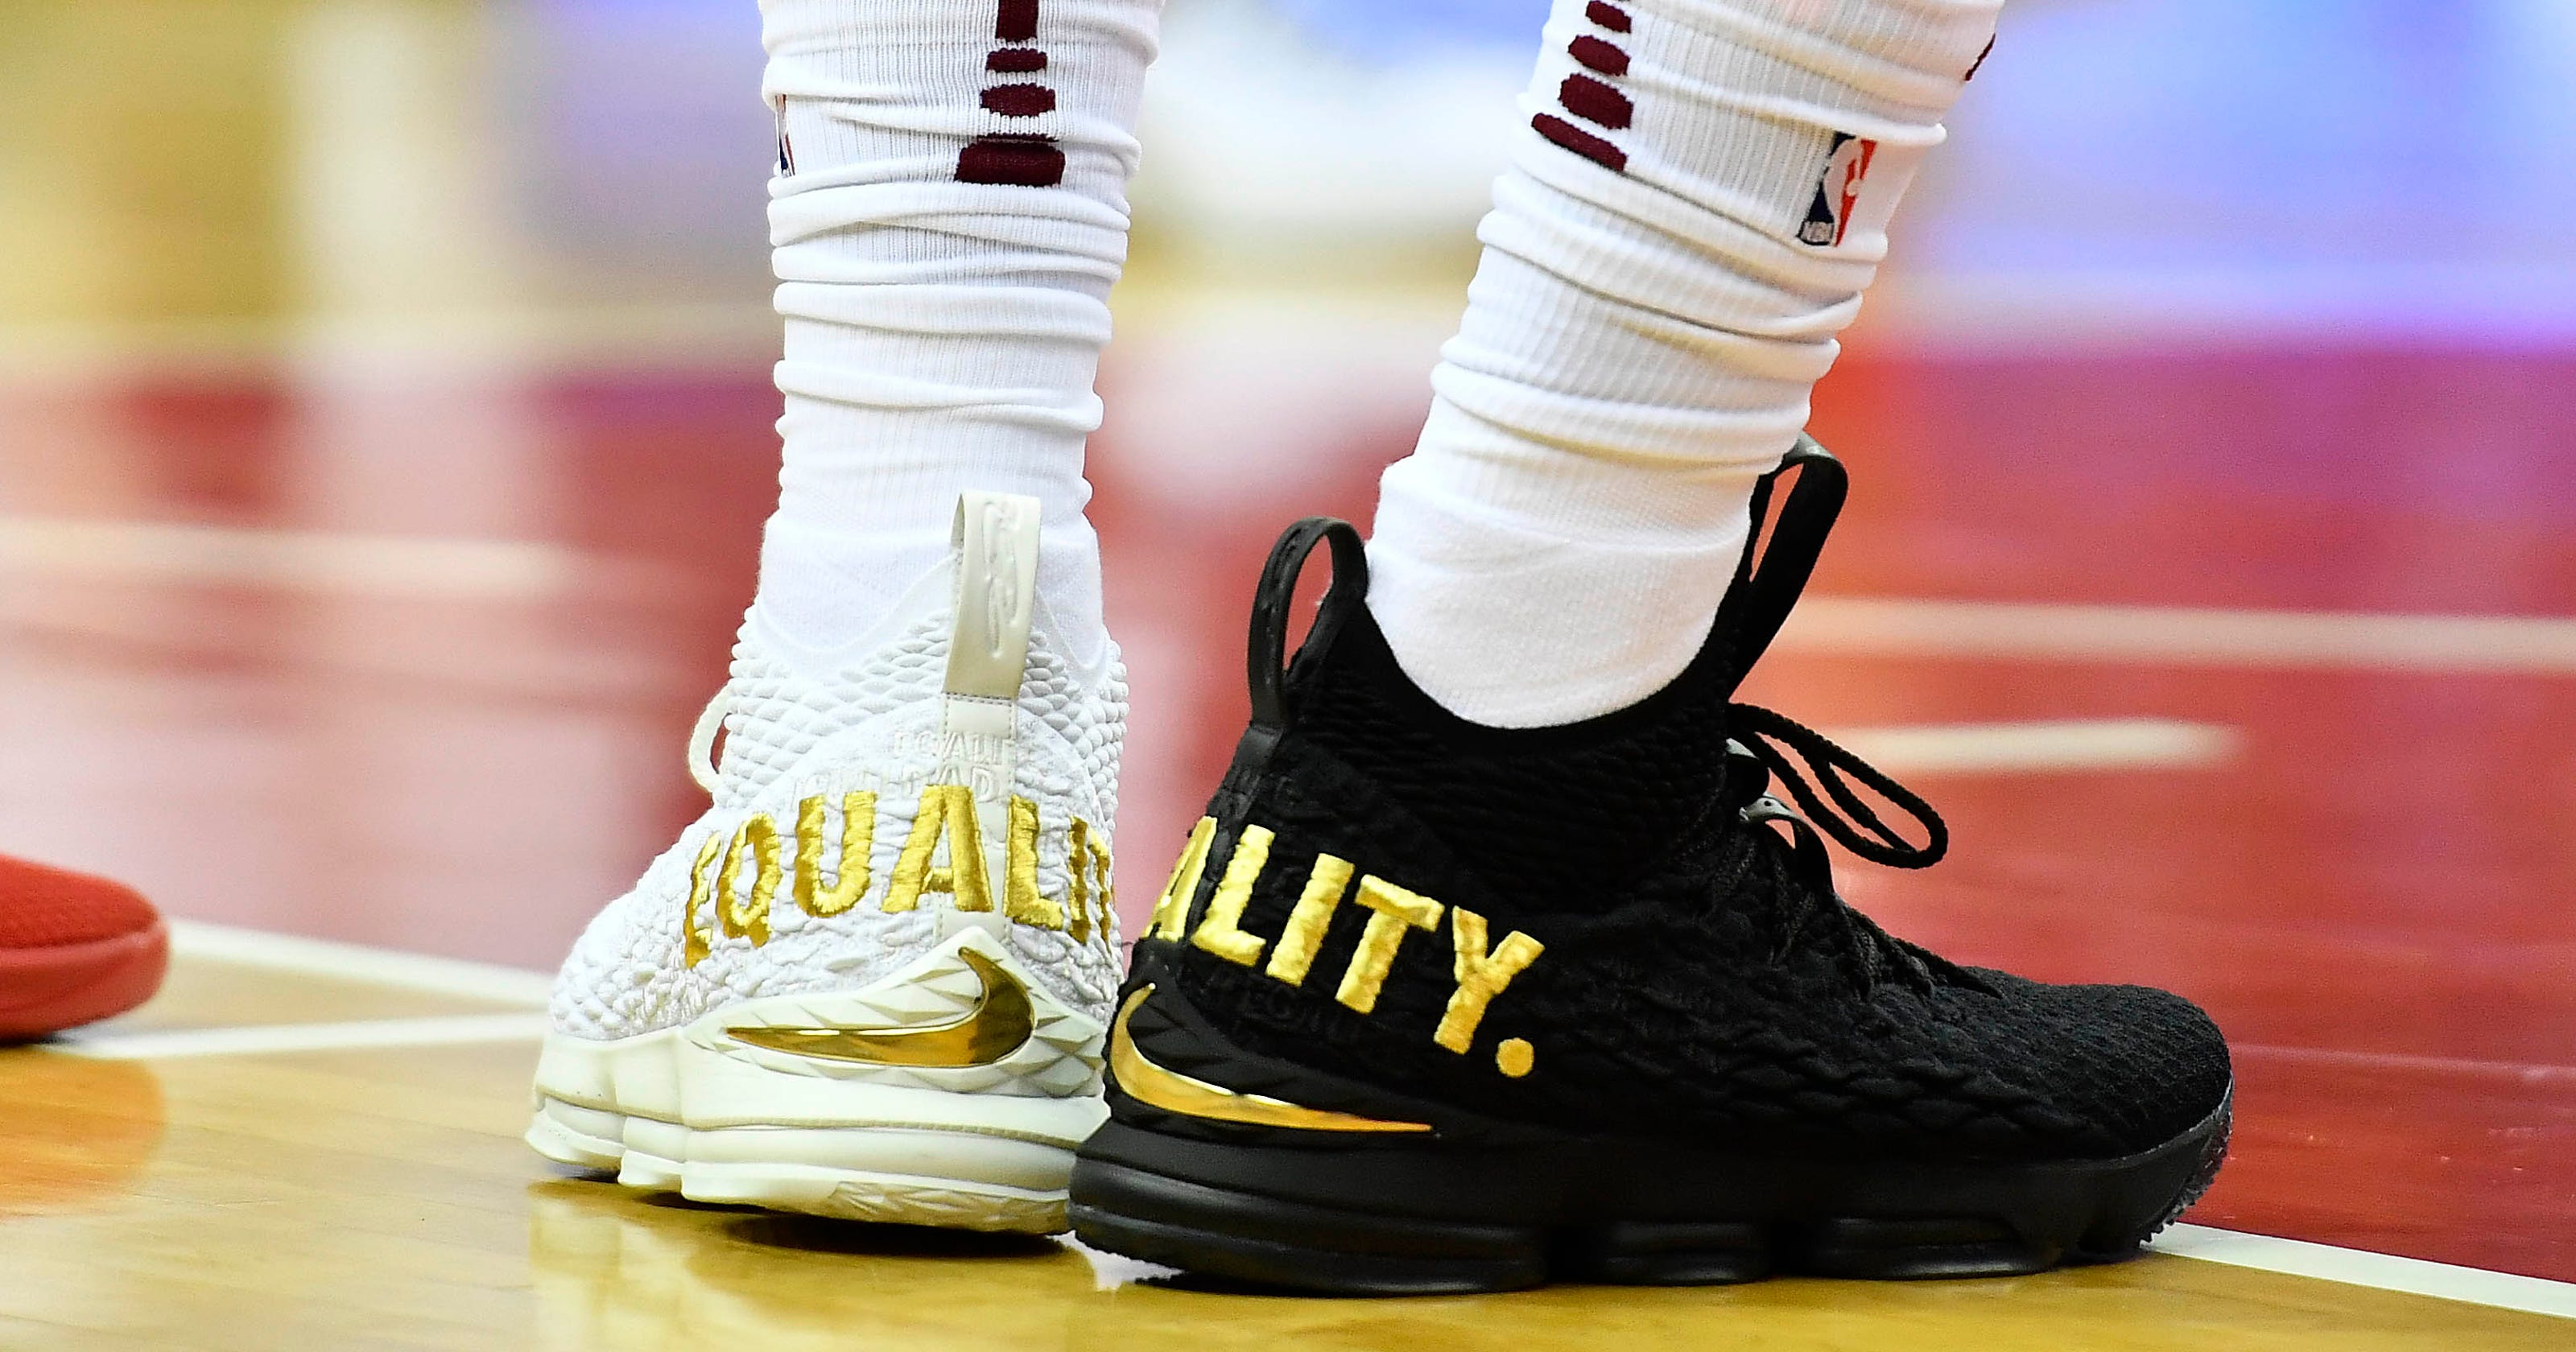 240a1da0c6a LeBron James makes statement with  Equality  sneakers worn in D.C.